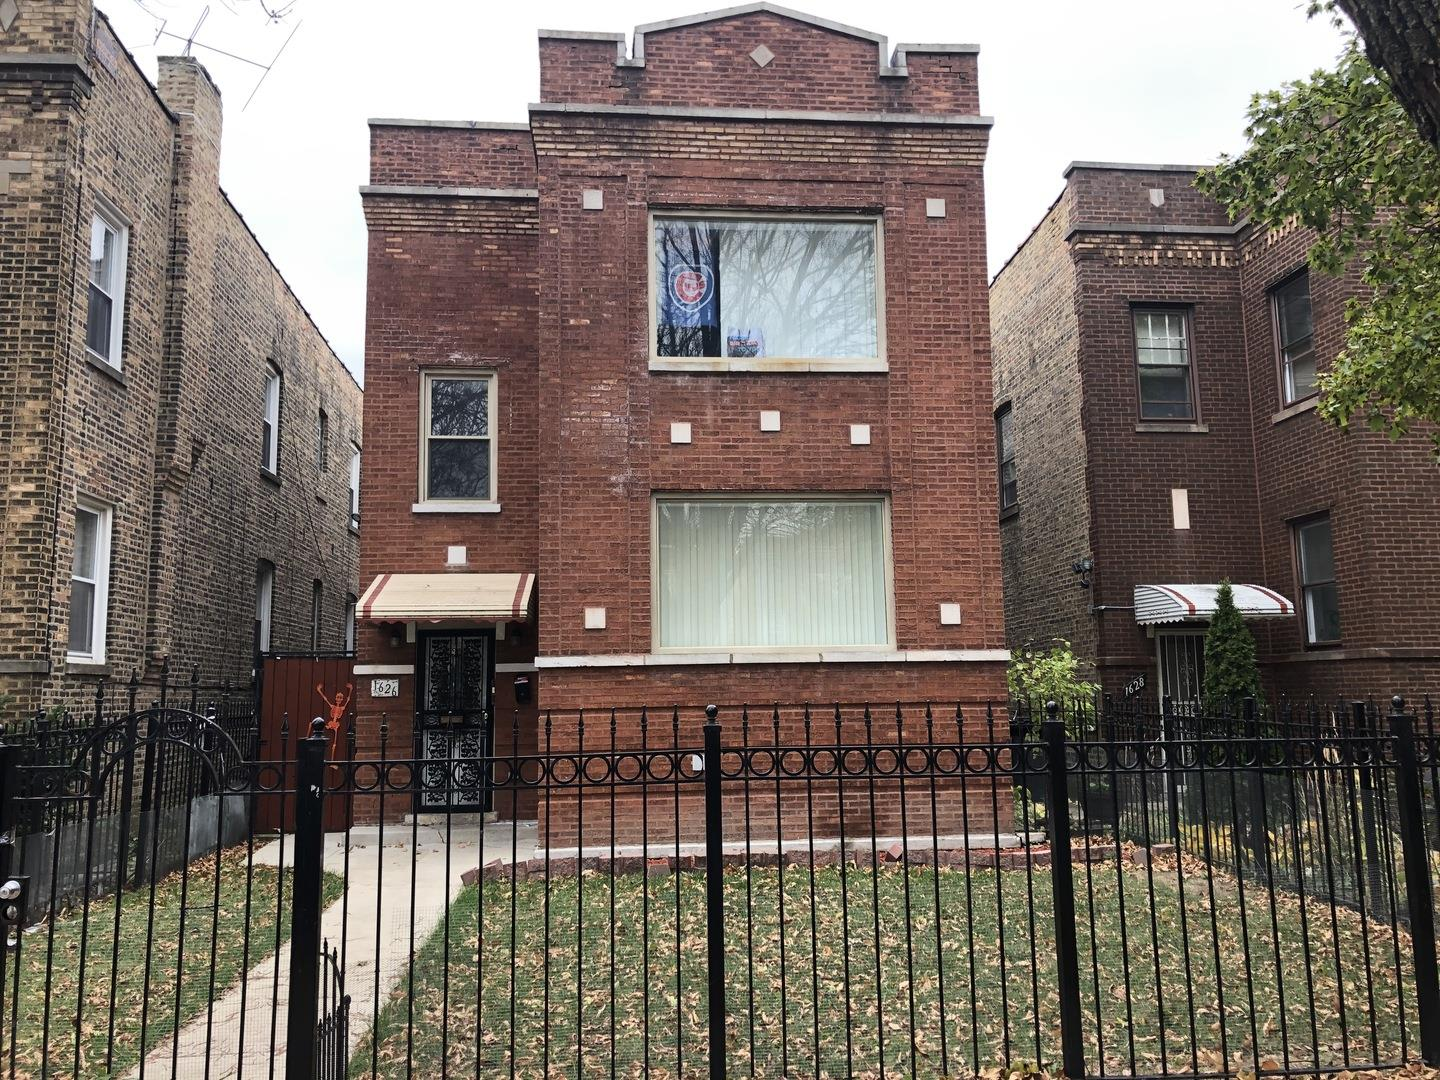 1626 N MAYFIELD Avenue, Chicago, IL 60639 - #: 10922661